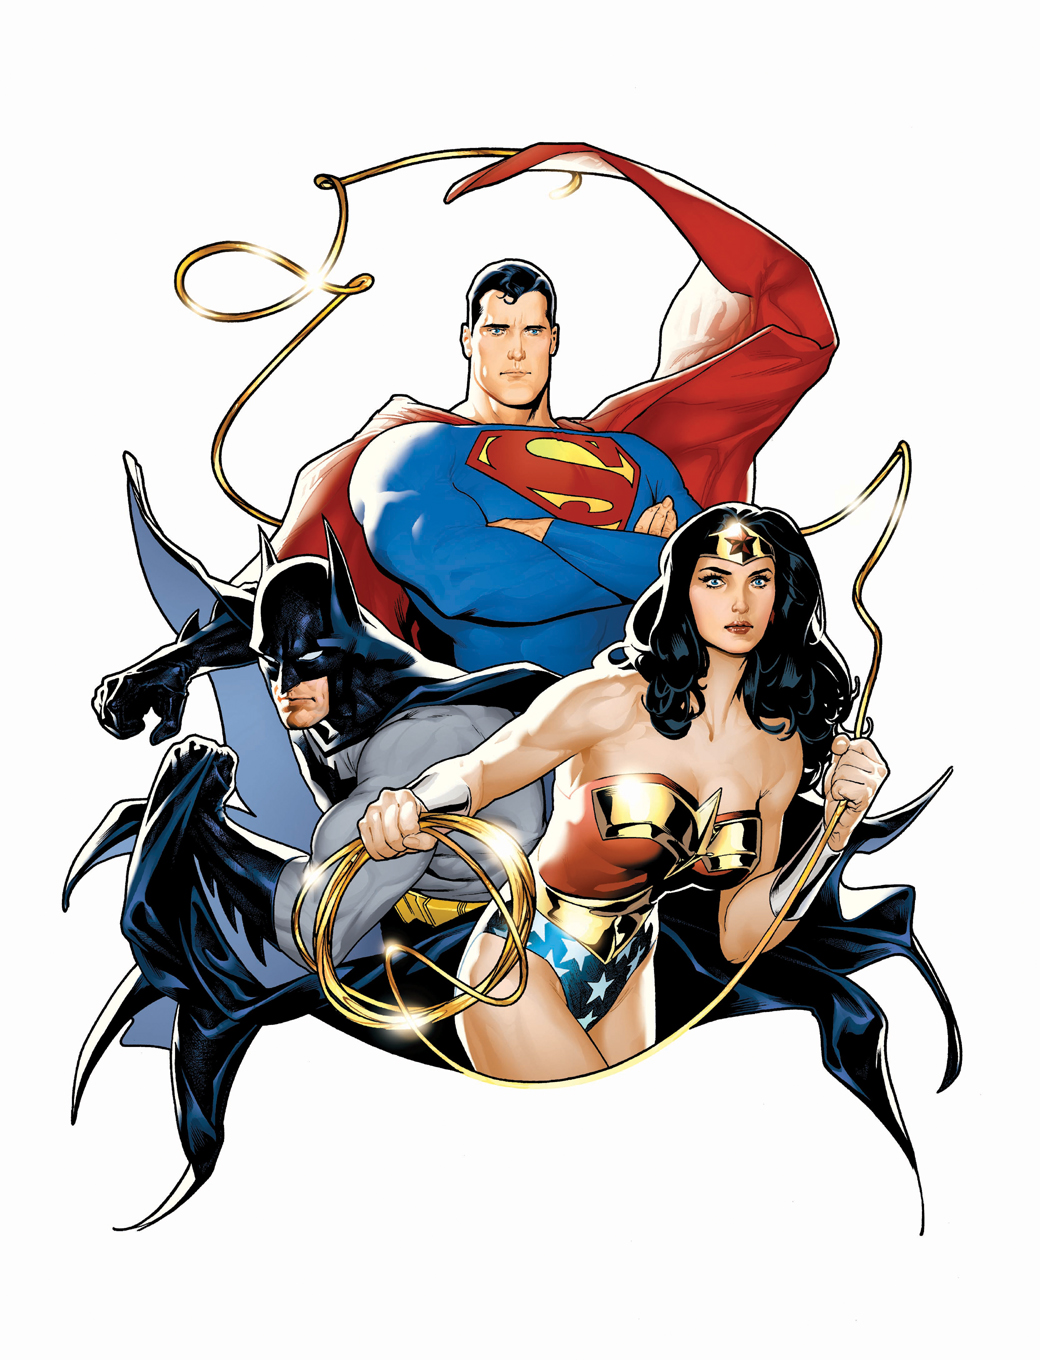 The heroesonline blog 2011 march - Superman wonder woman cartoon ...